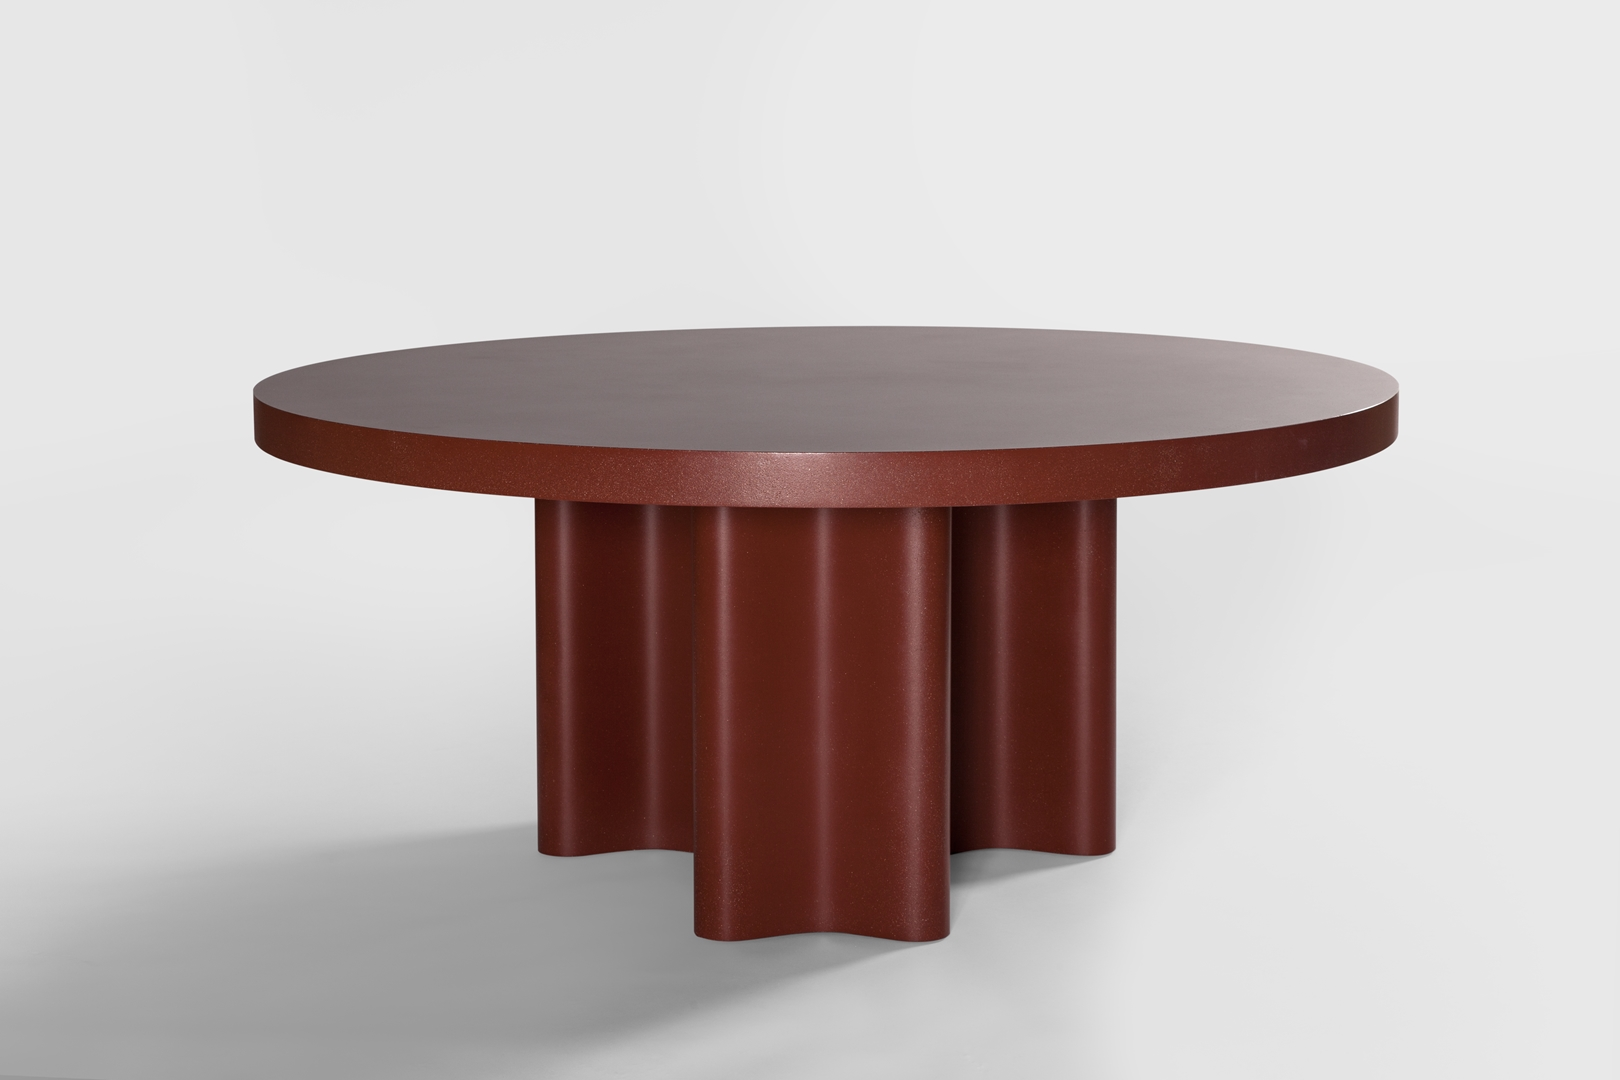 Azo Table by Francois Bauchet at Galerie kreo coutresy of Sylvia Chan and Galerie kreo (Copy)